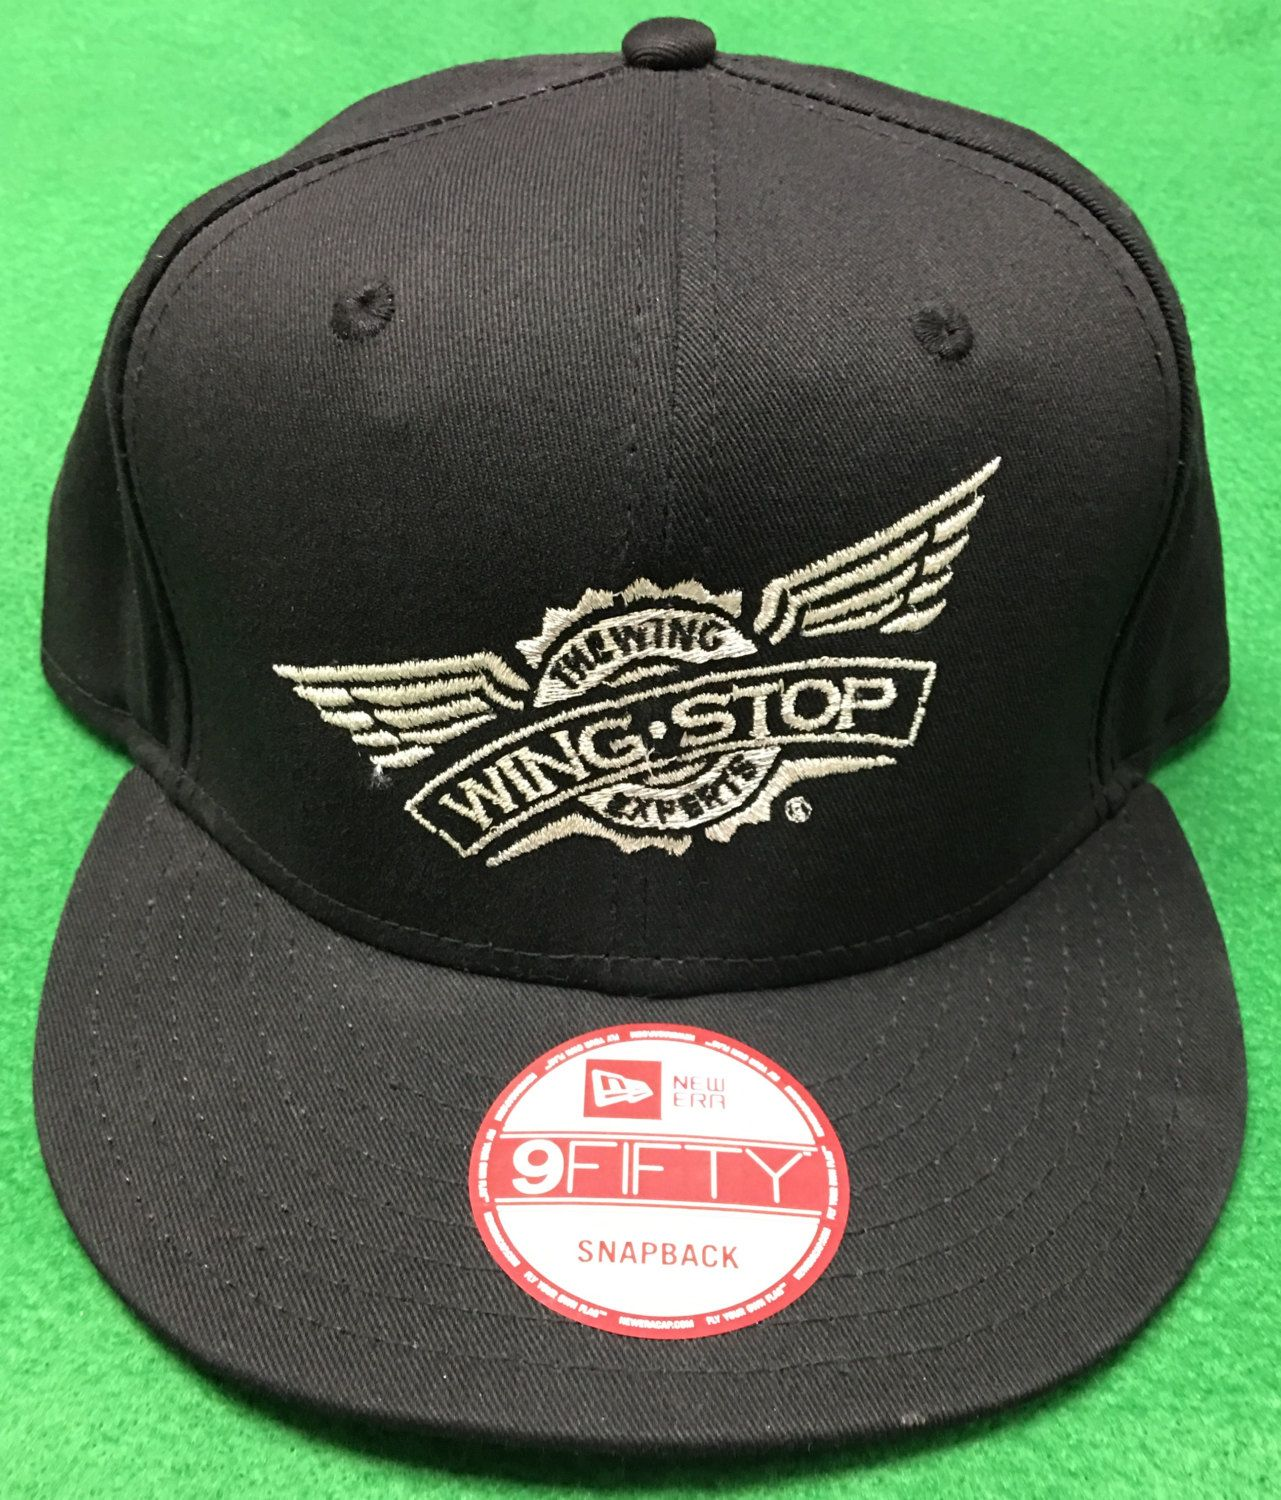 Wing Stop The Wing Experts Adjustable Snapback Cap Unique Hats Snapback Hats Vintage